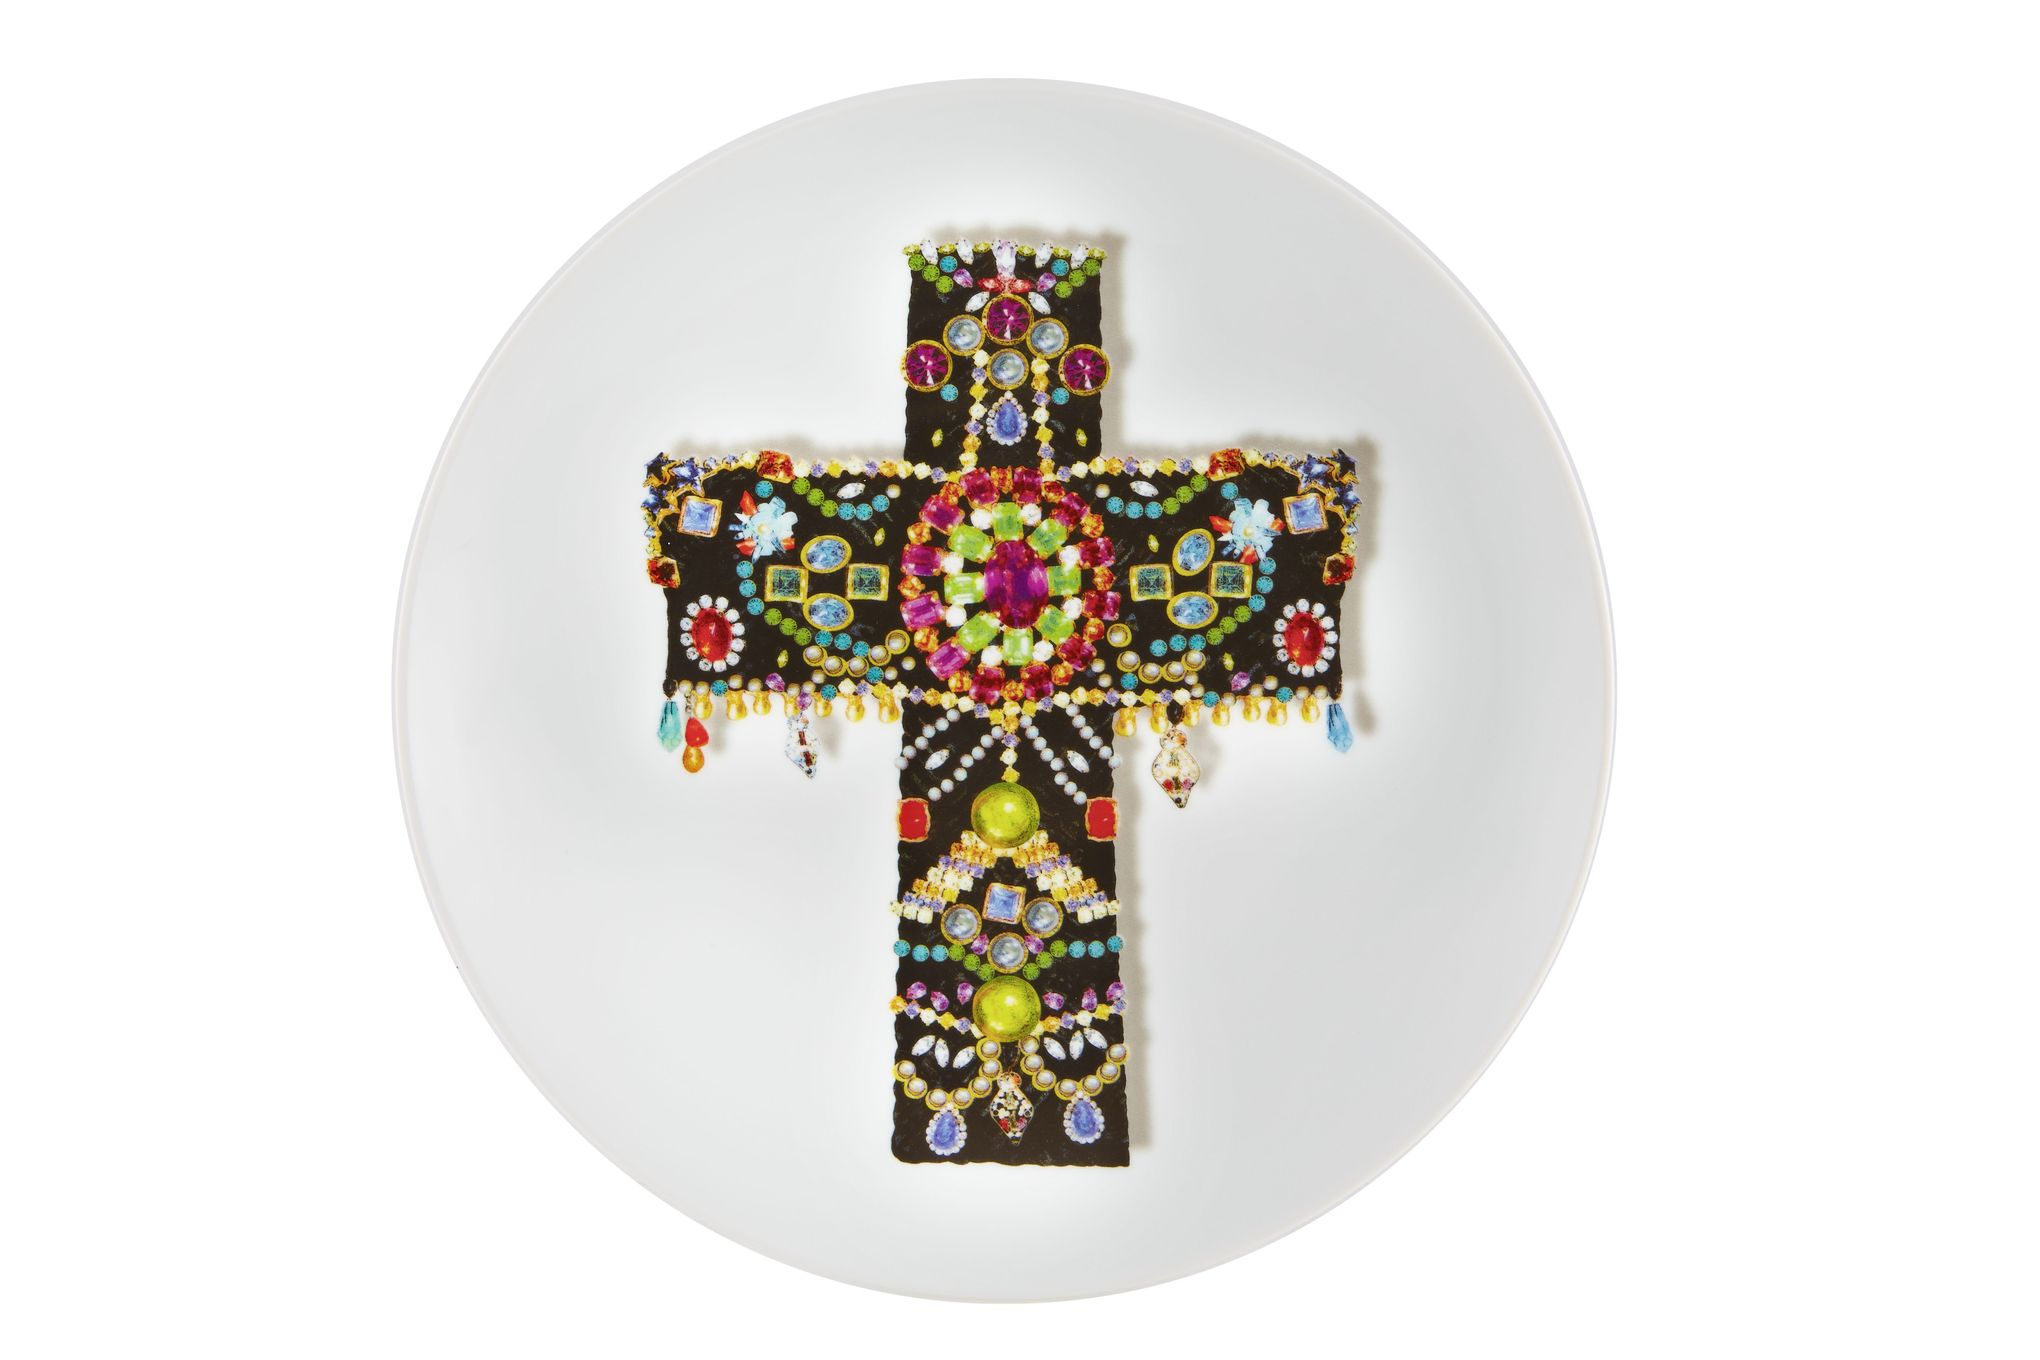 Christian Lacroix Love Who You Want Plate - Giftware Black Cross - Gift Boxed 23cm thumb 1